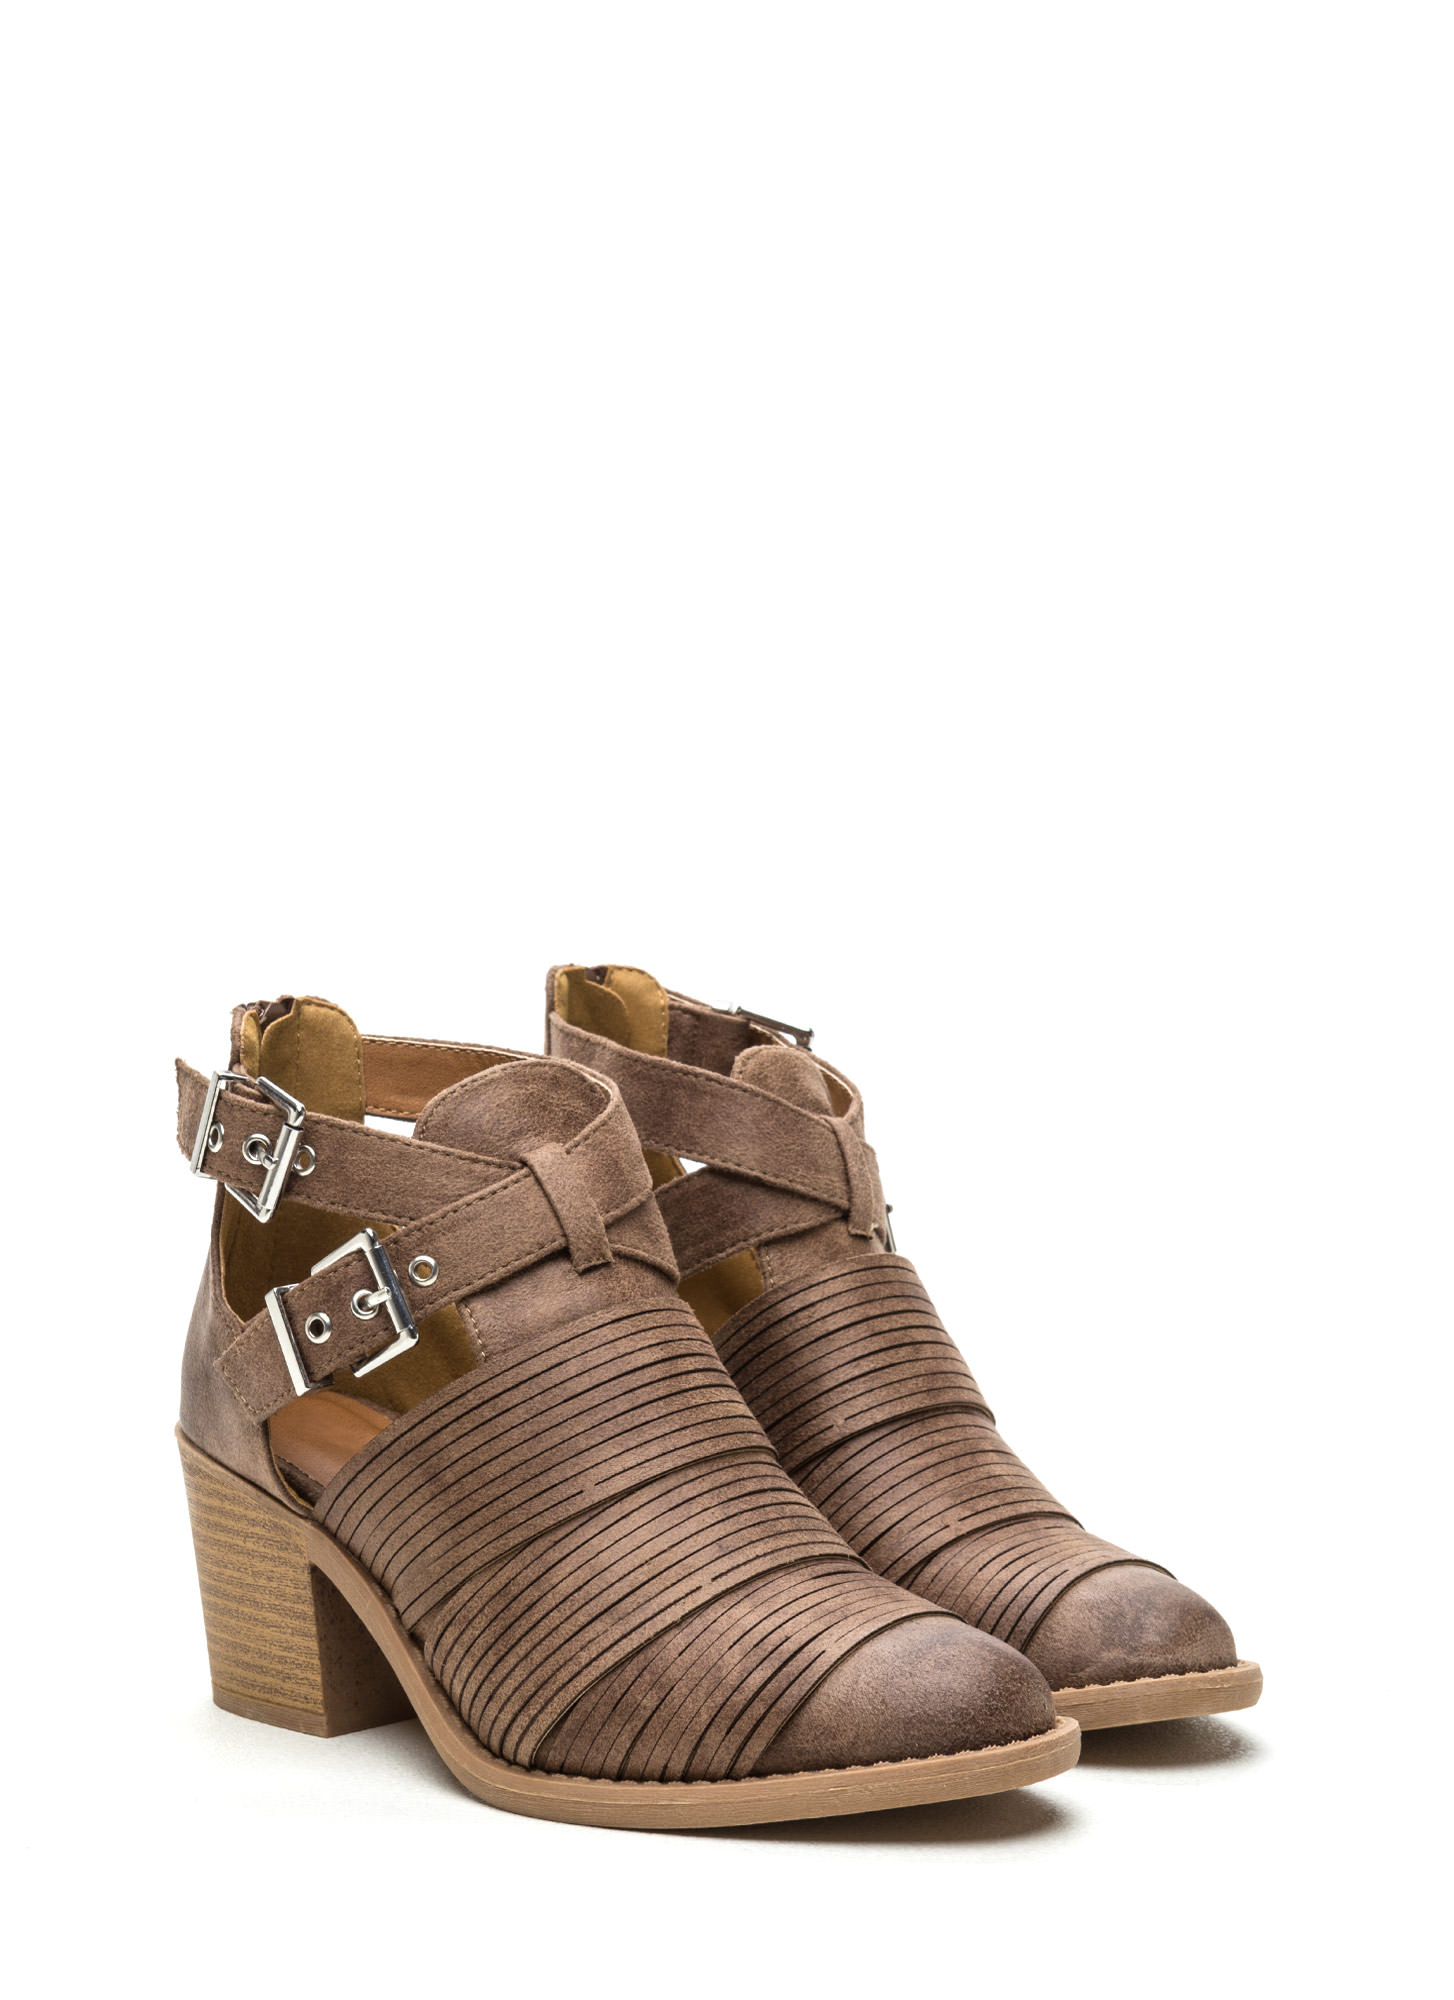 Make The Cut-Out Booties TAUPE